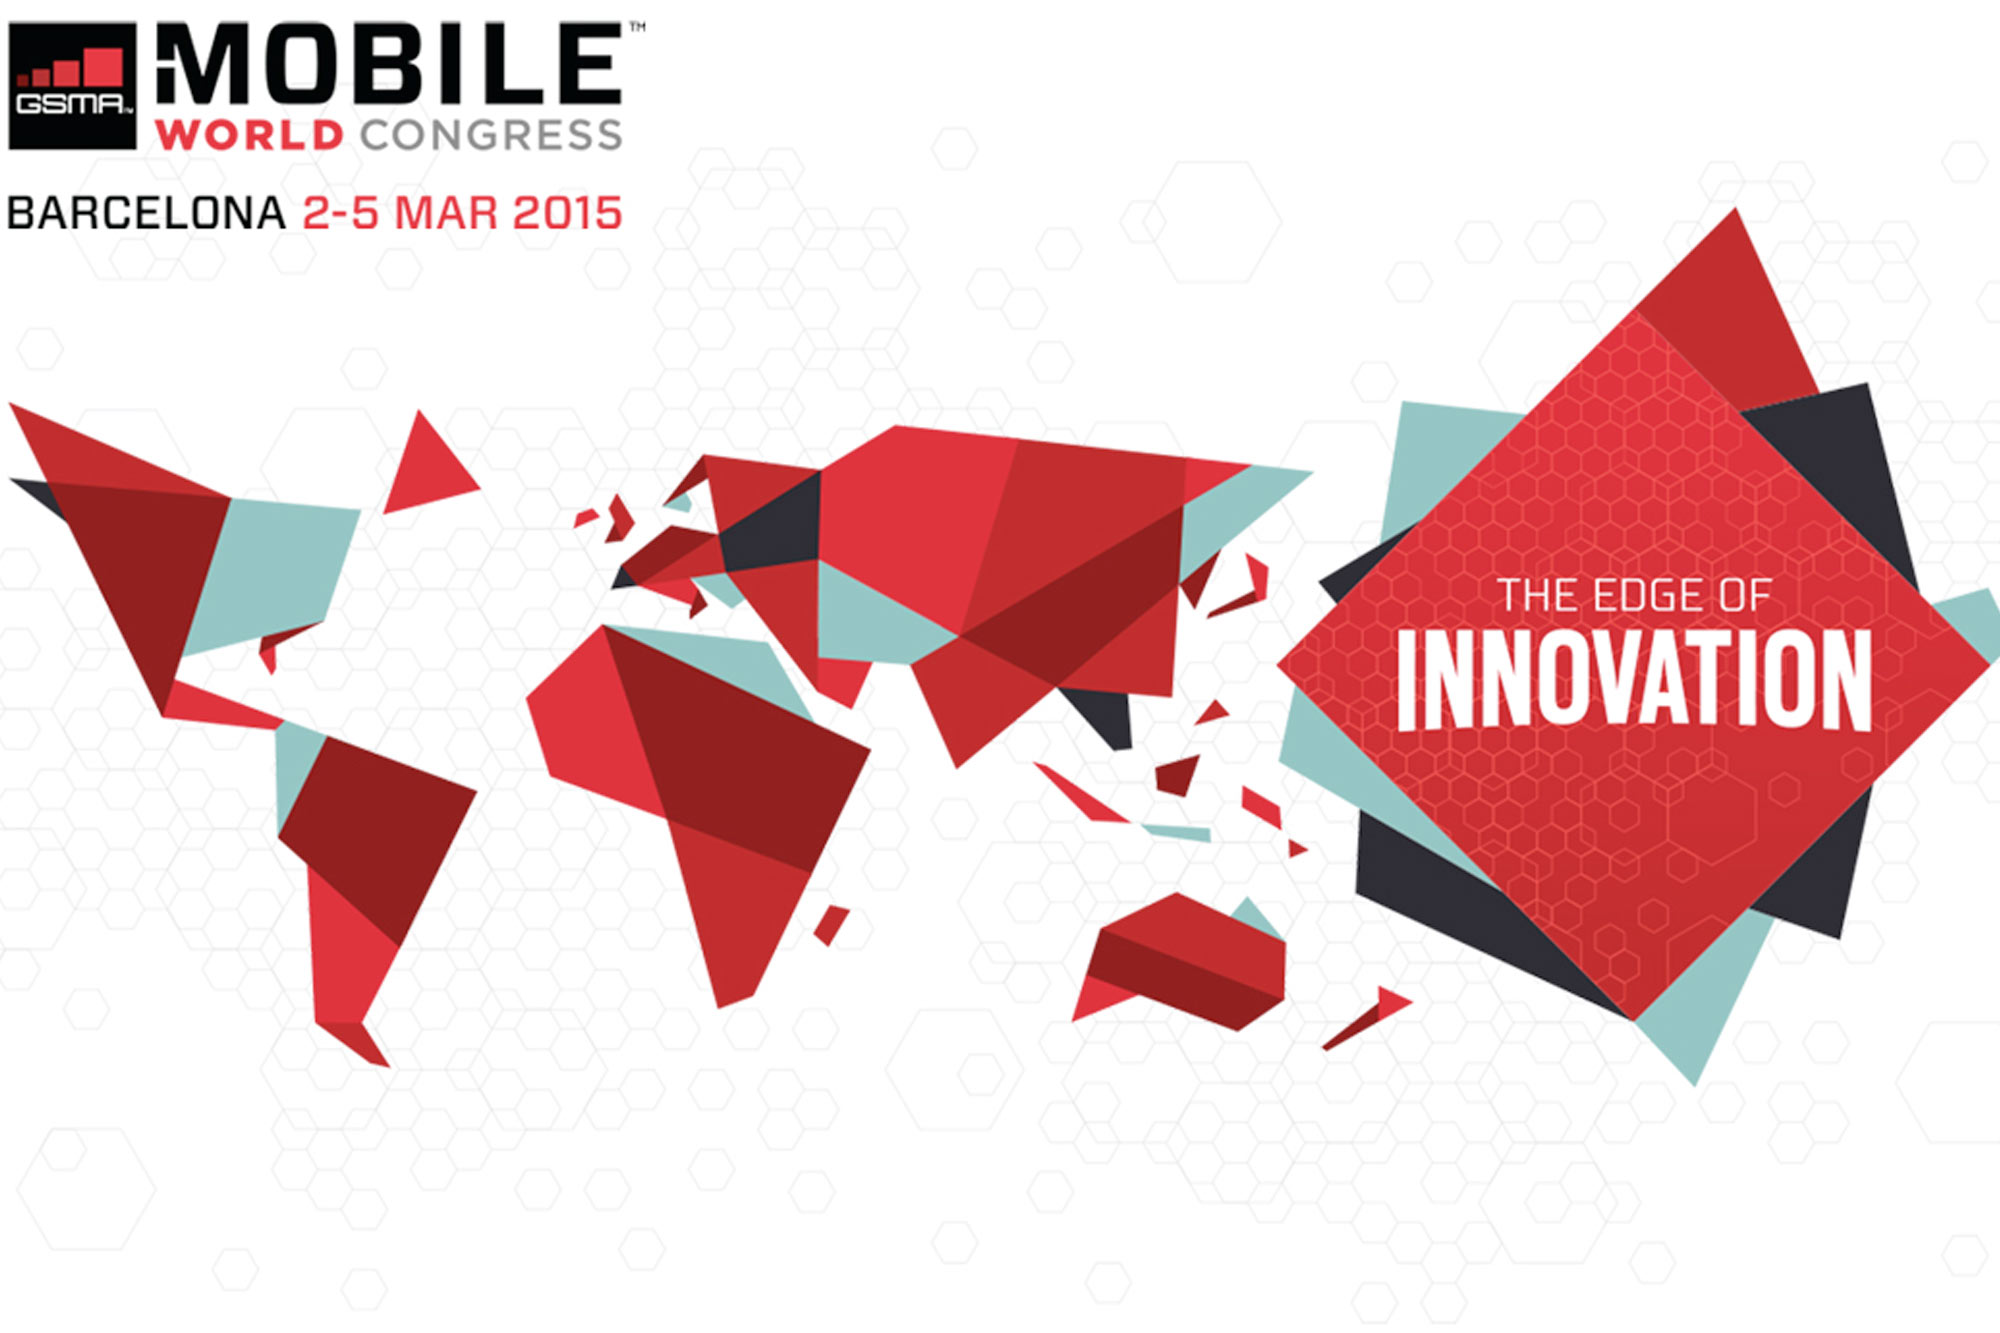 MobiWeb at MWC 2015, the world's greatest mobile innovation event